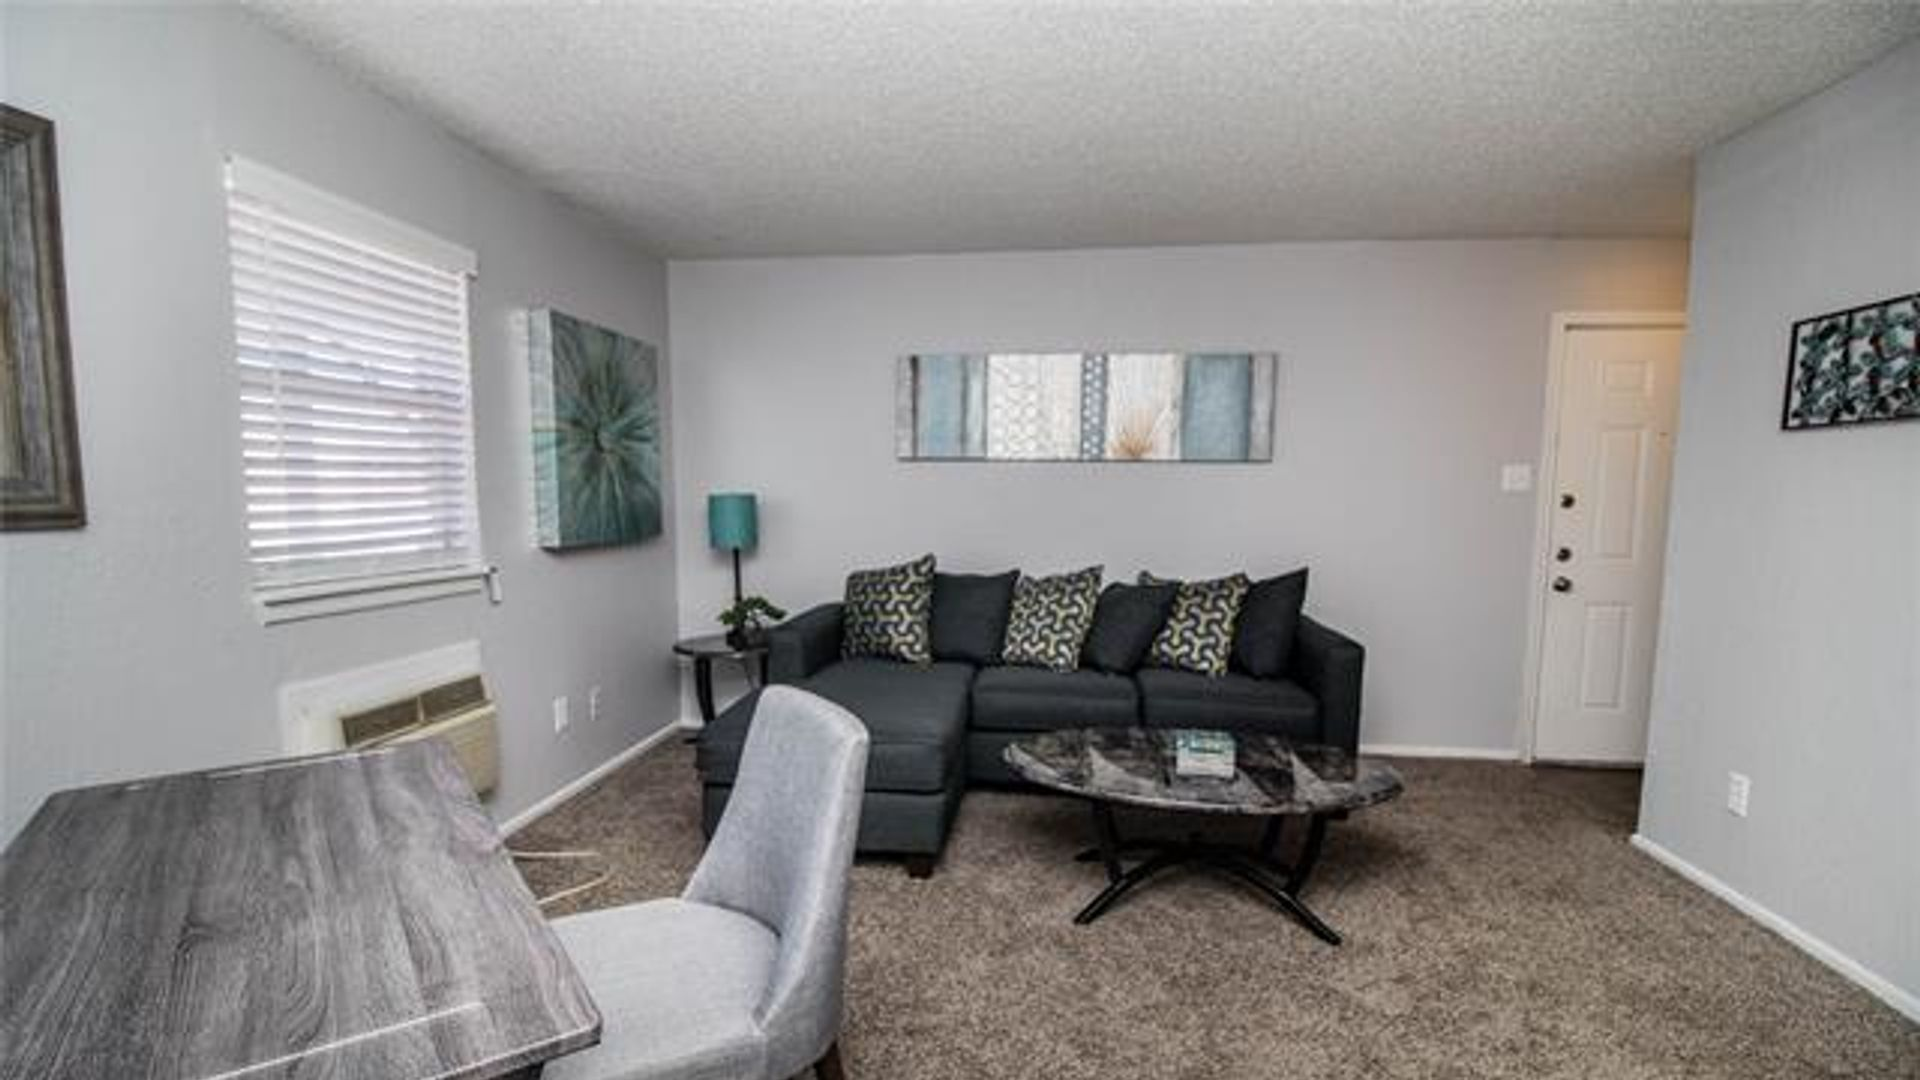 1 bedroom apartment at 3215 35th street lubbock tx 79413